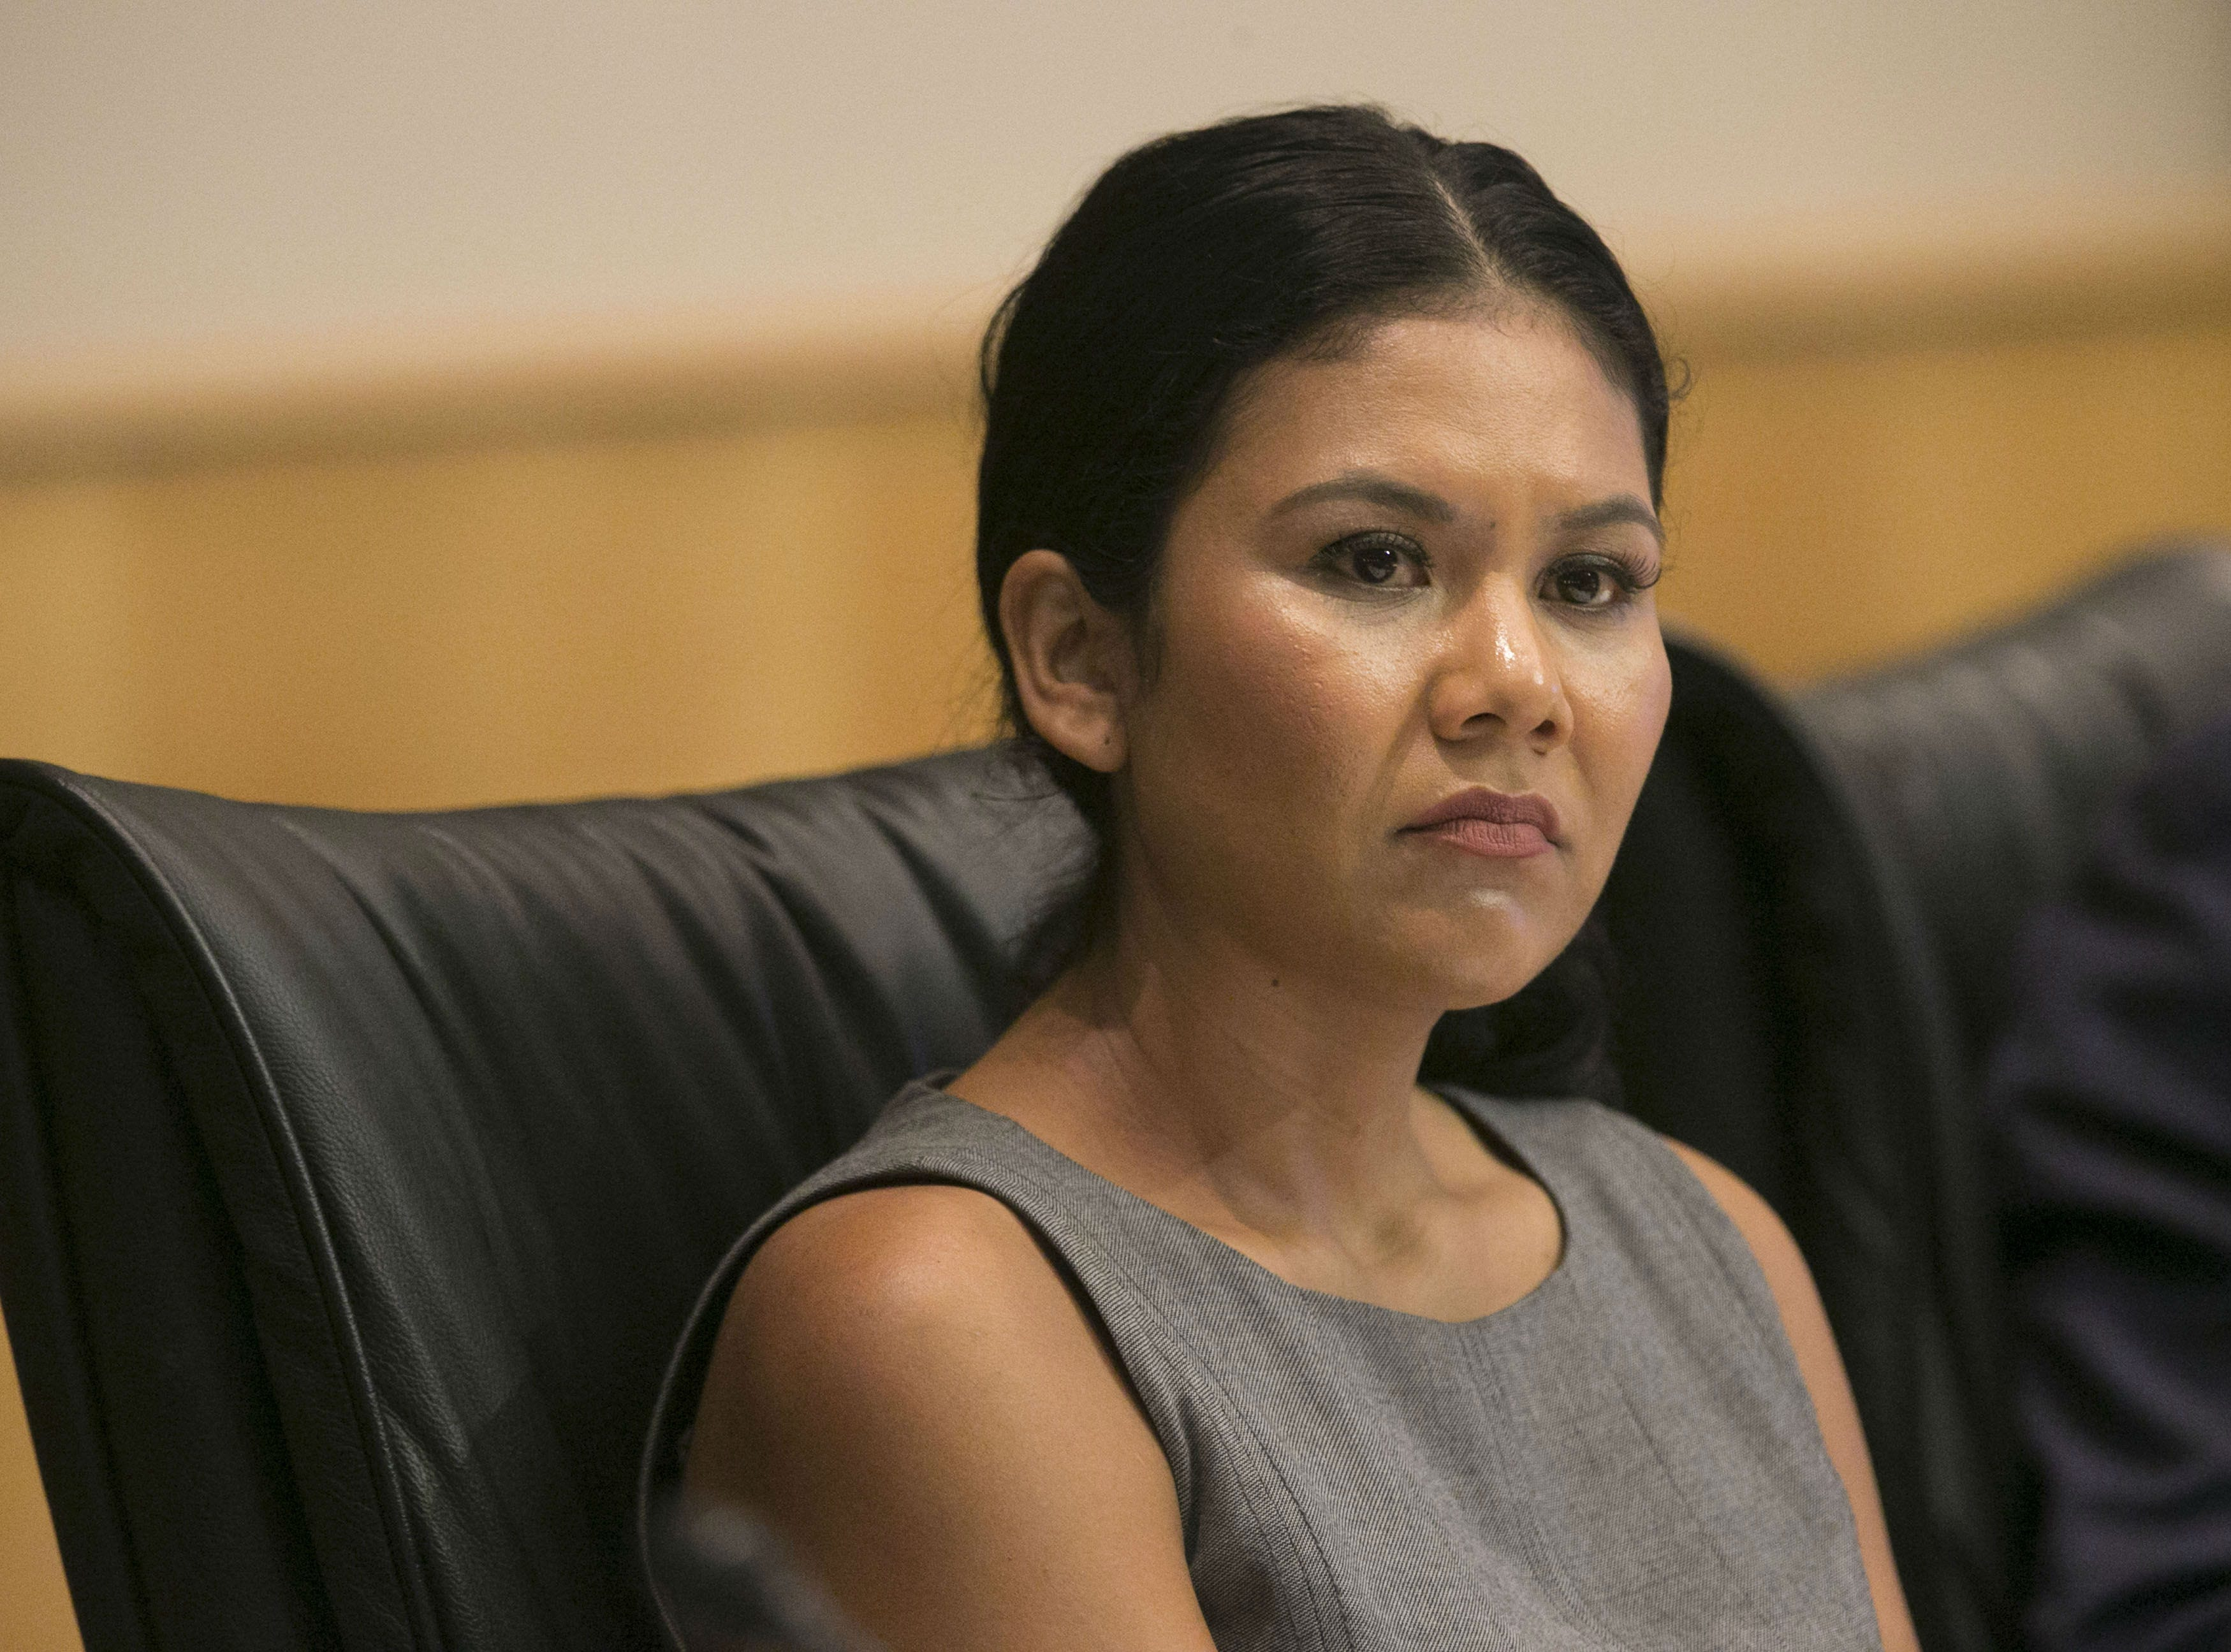 Phoenix City Councilwoman Vania Guevara during a Phoenix City Council meeting at the Phoenix City Council Chambers on Sept. 19, 2018.